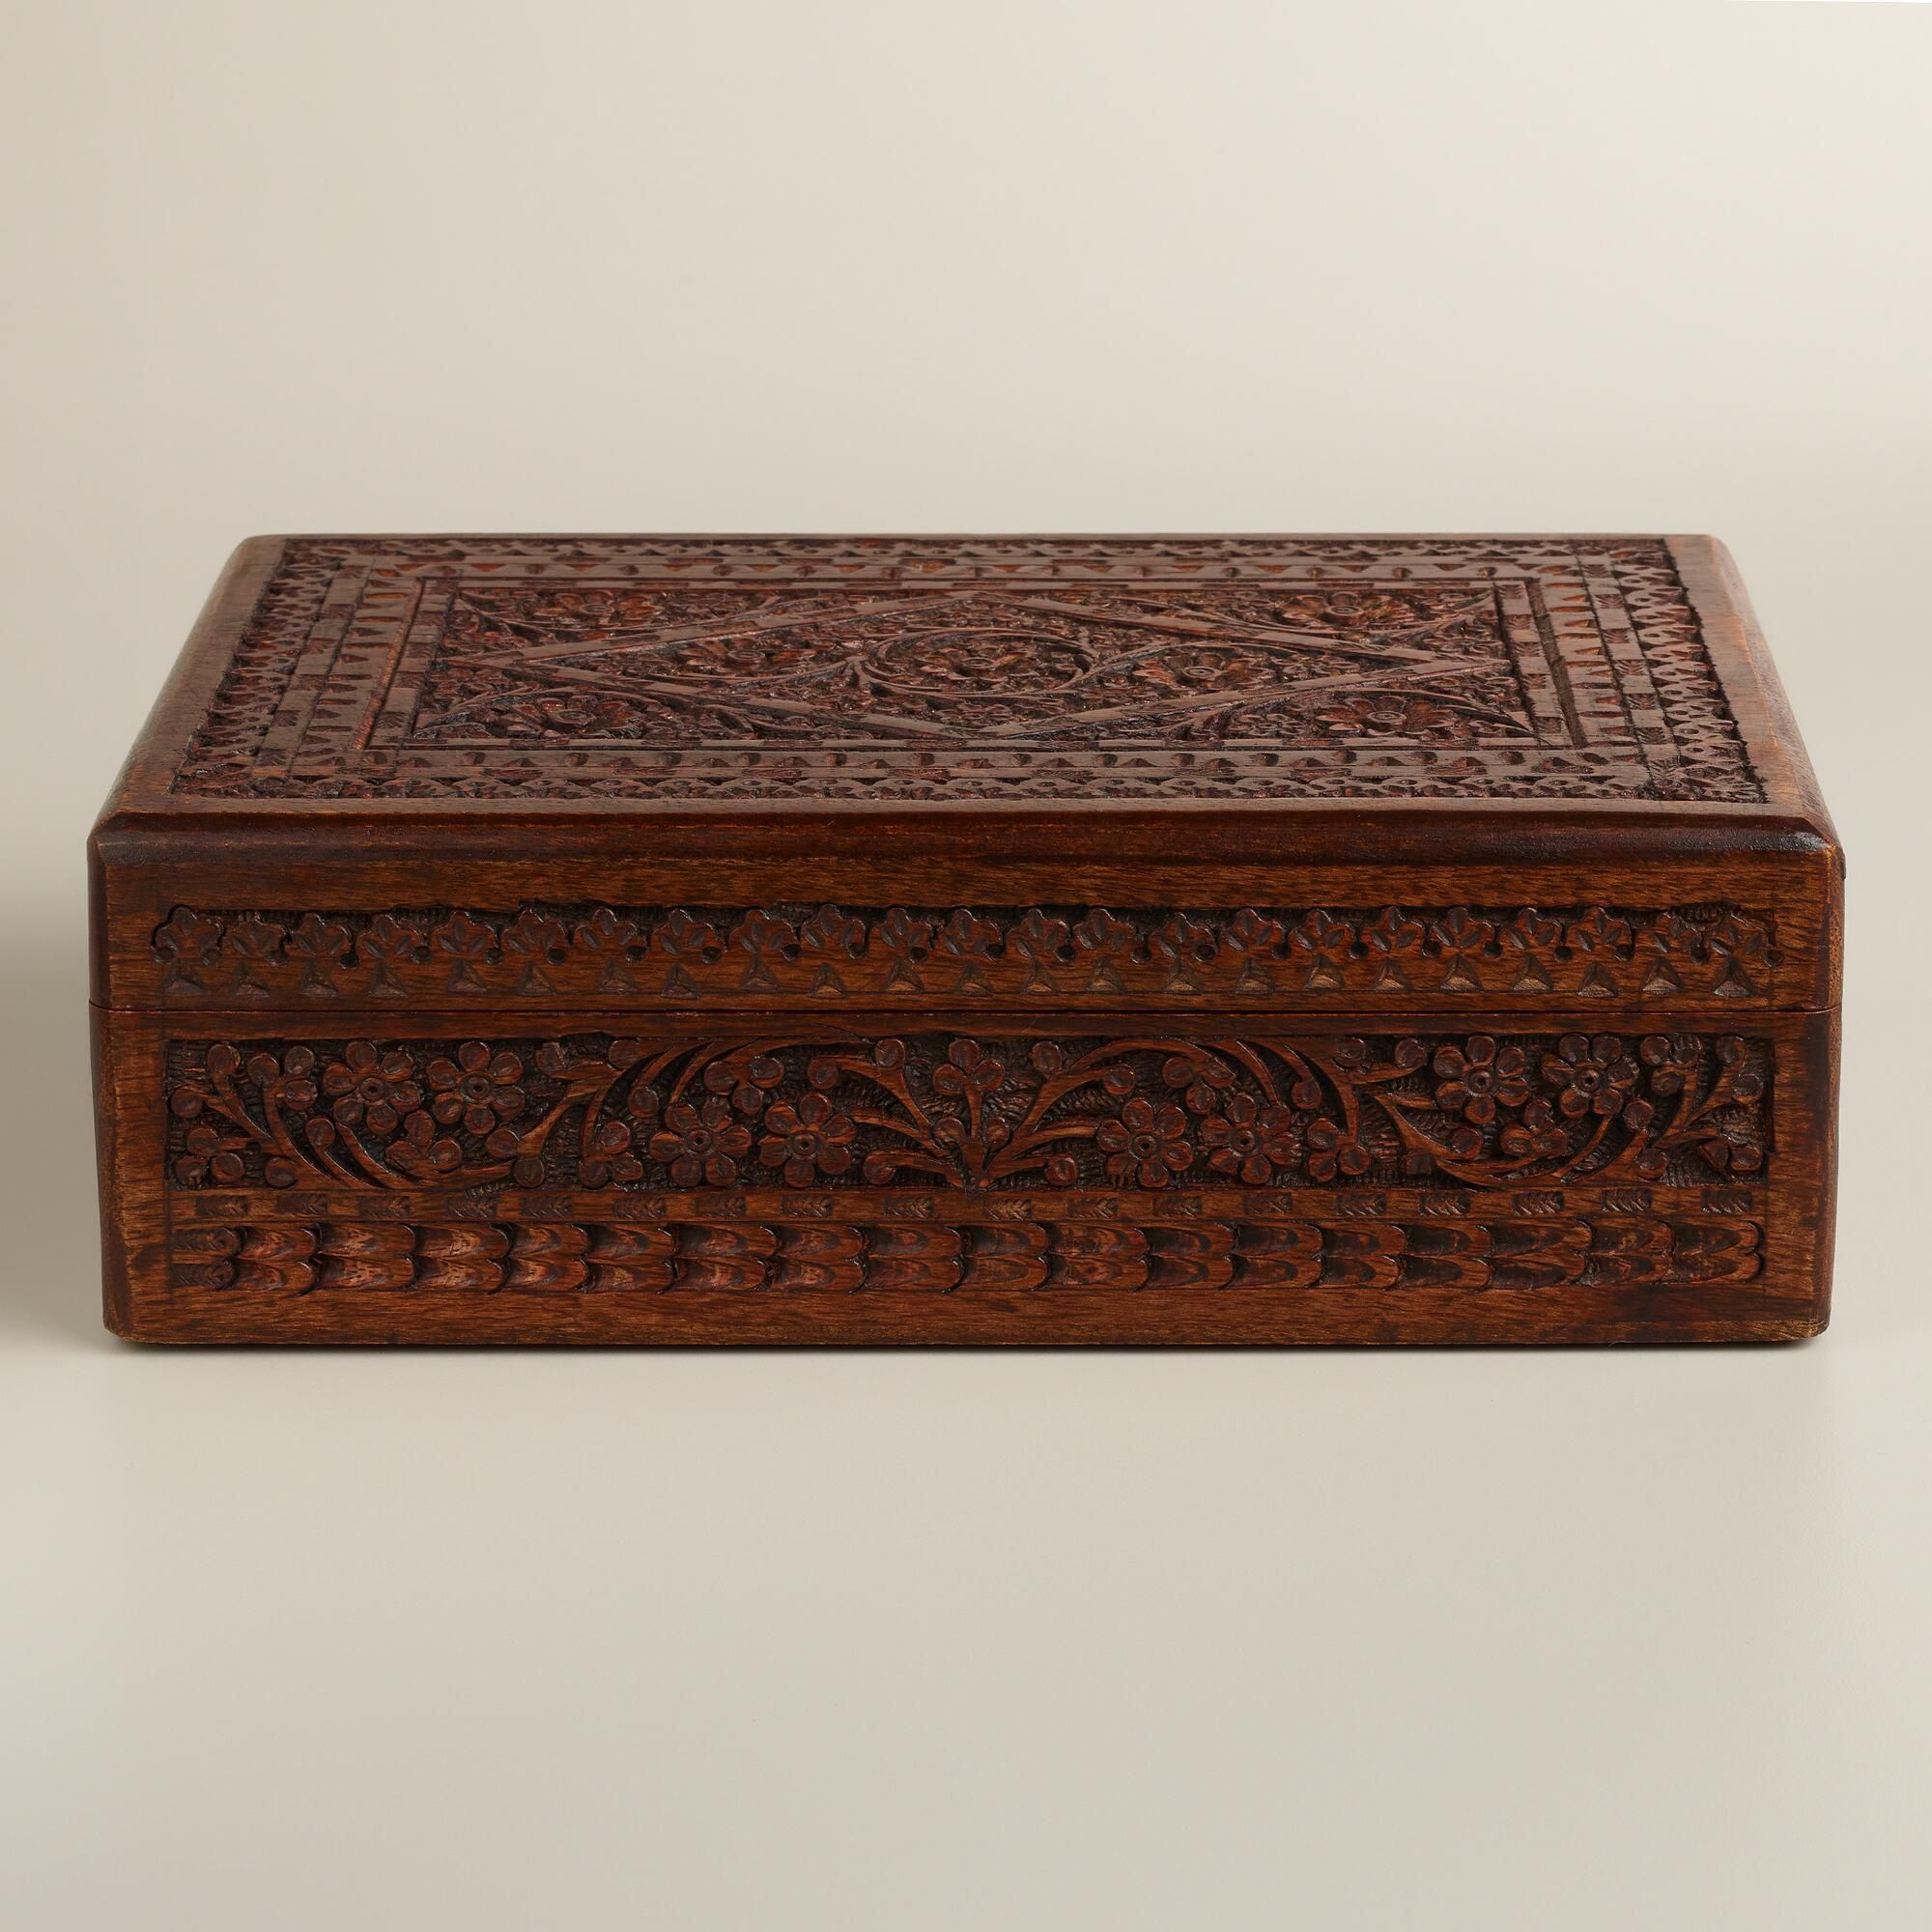 World Market Jewelry Box Amusing Espresso Carved Brooklyn Jewelry Box  World Market  Home Design Ideas